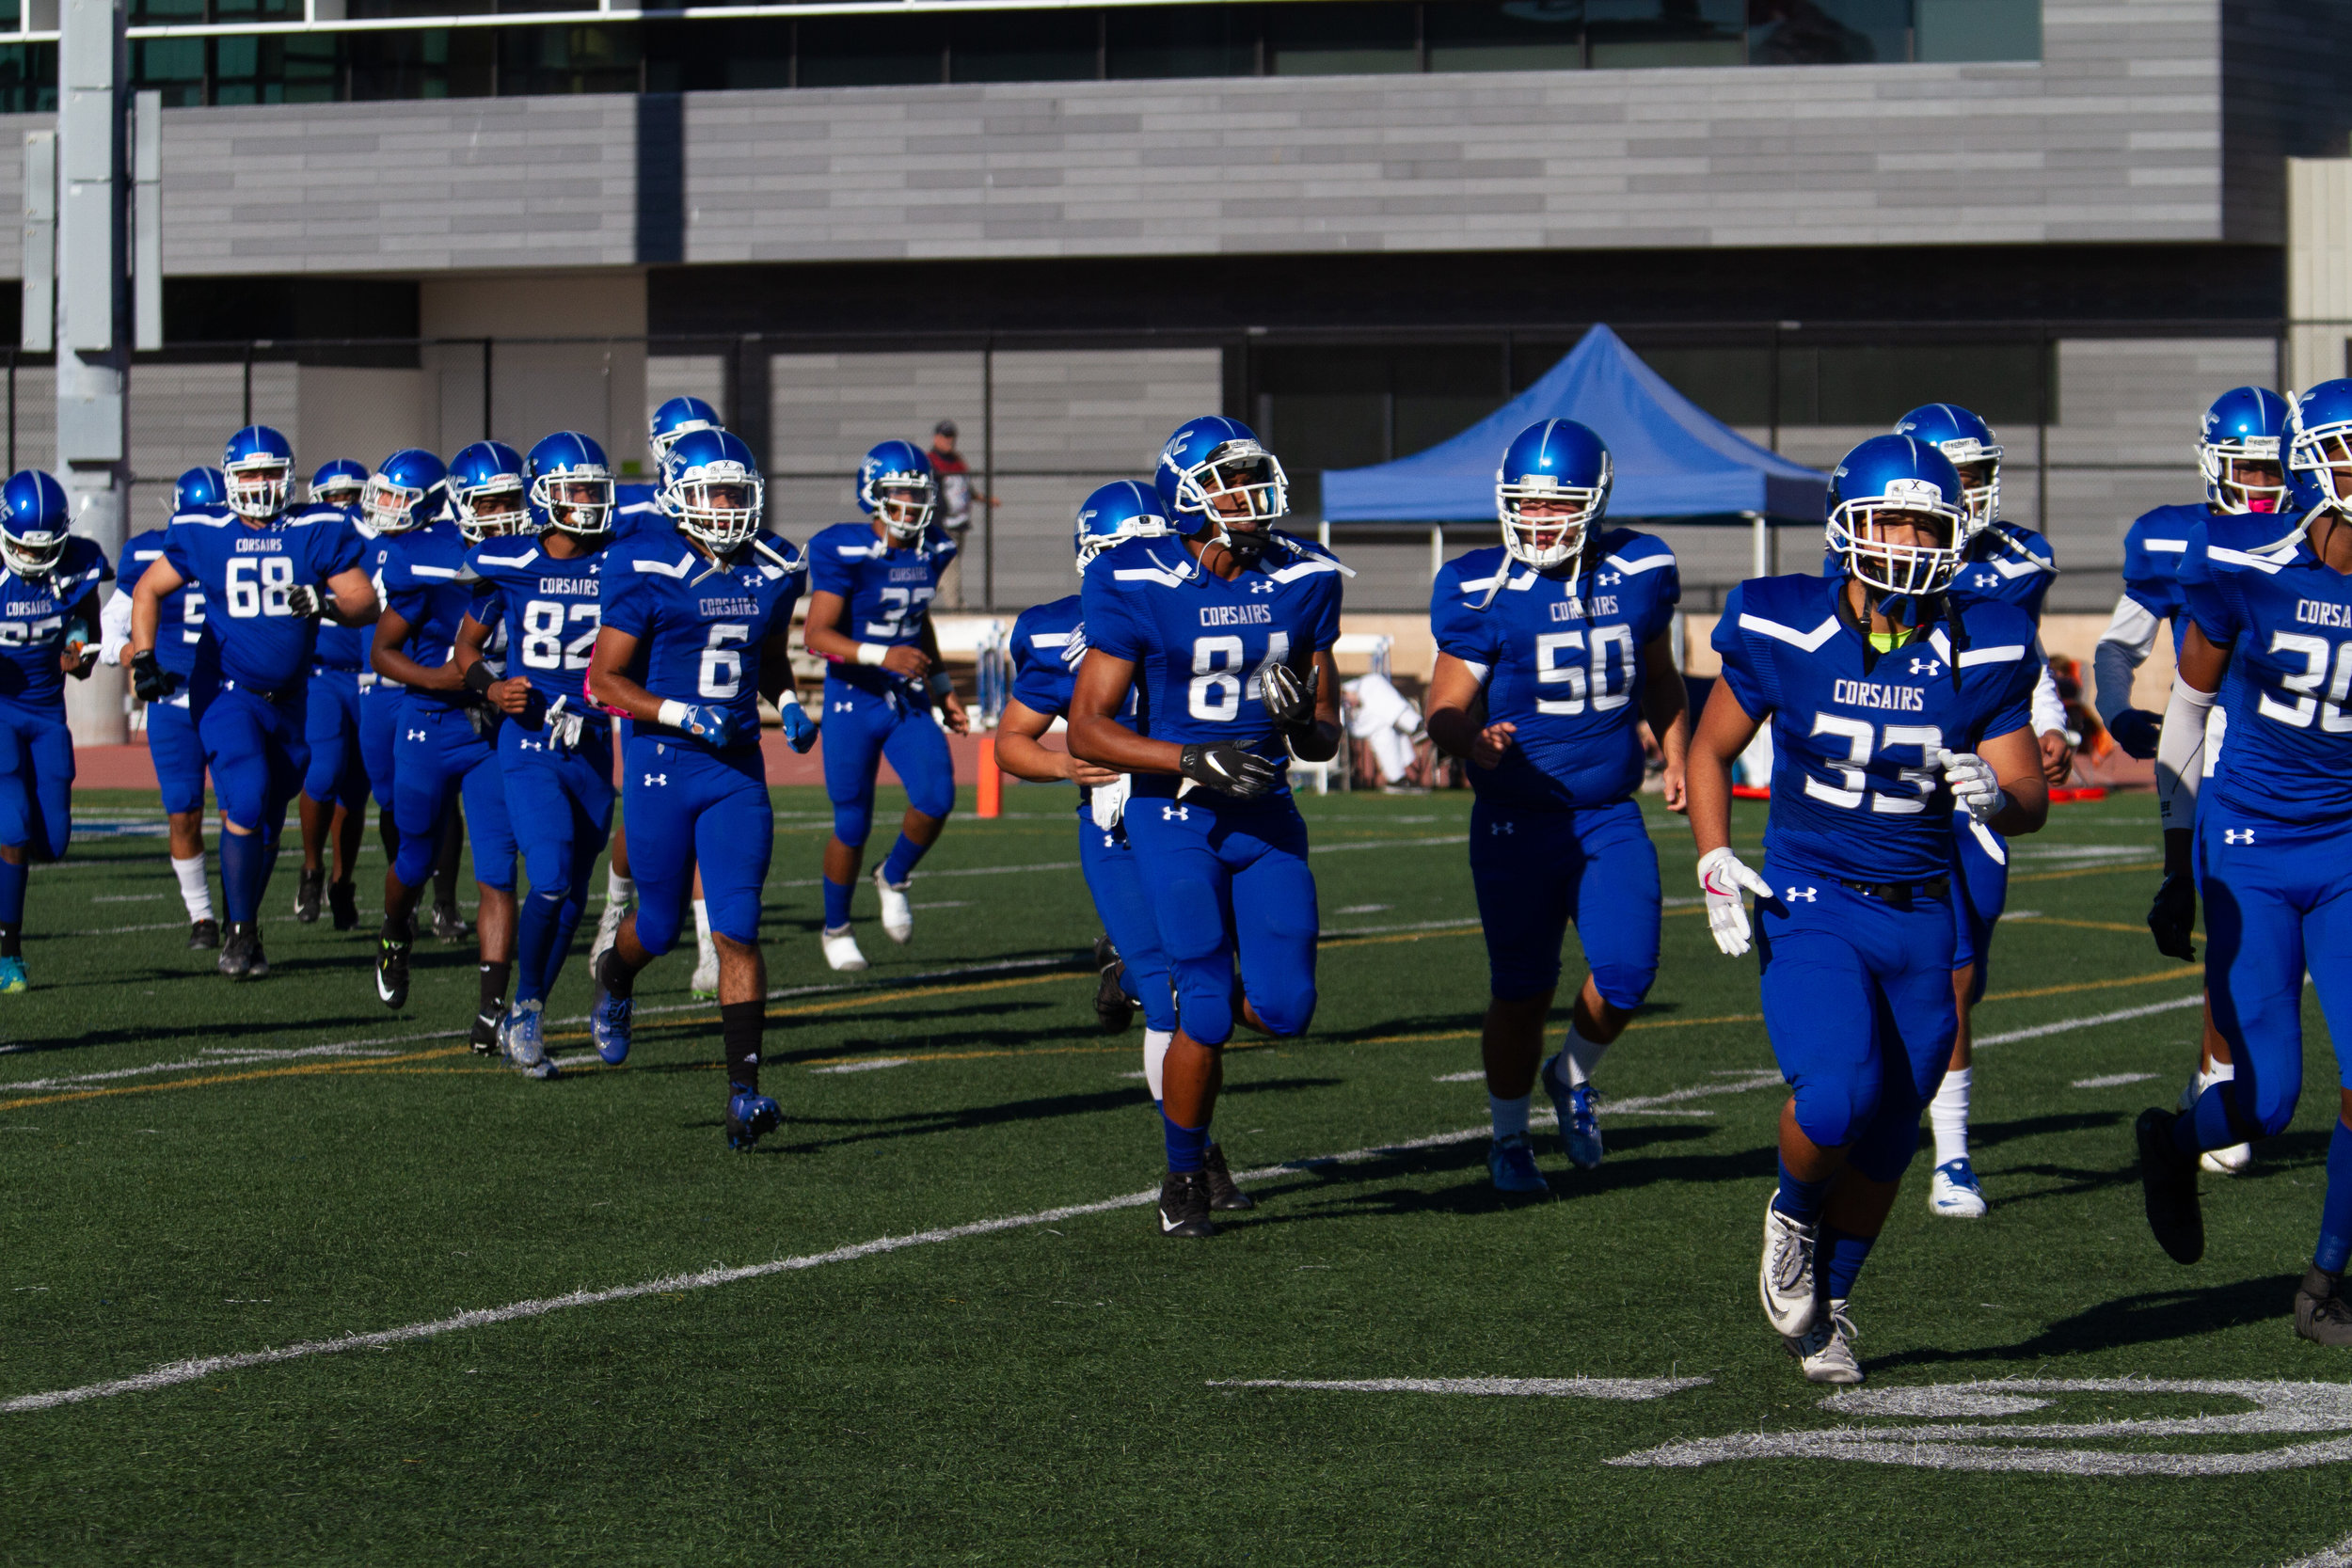 Santa Monica College Corsairs run on the Corsair Field after being announced during the homecoming game against Allan Hancock College Vikings on October 20th, 2018. Corsairs lose 52-0.(Ricardo Herrera/Corsair Photo)